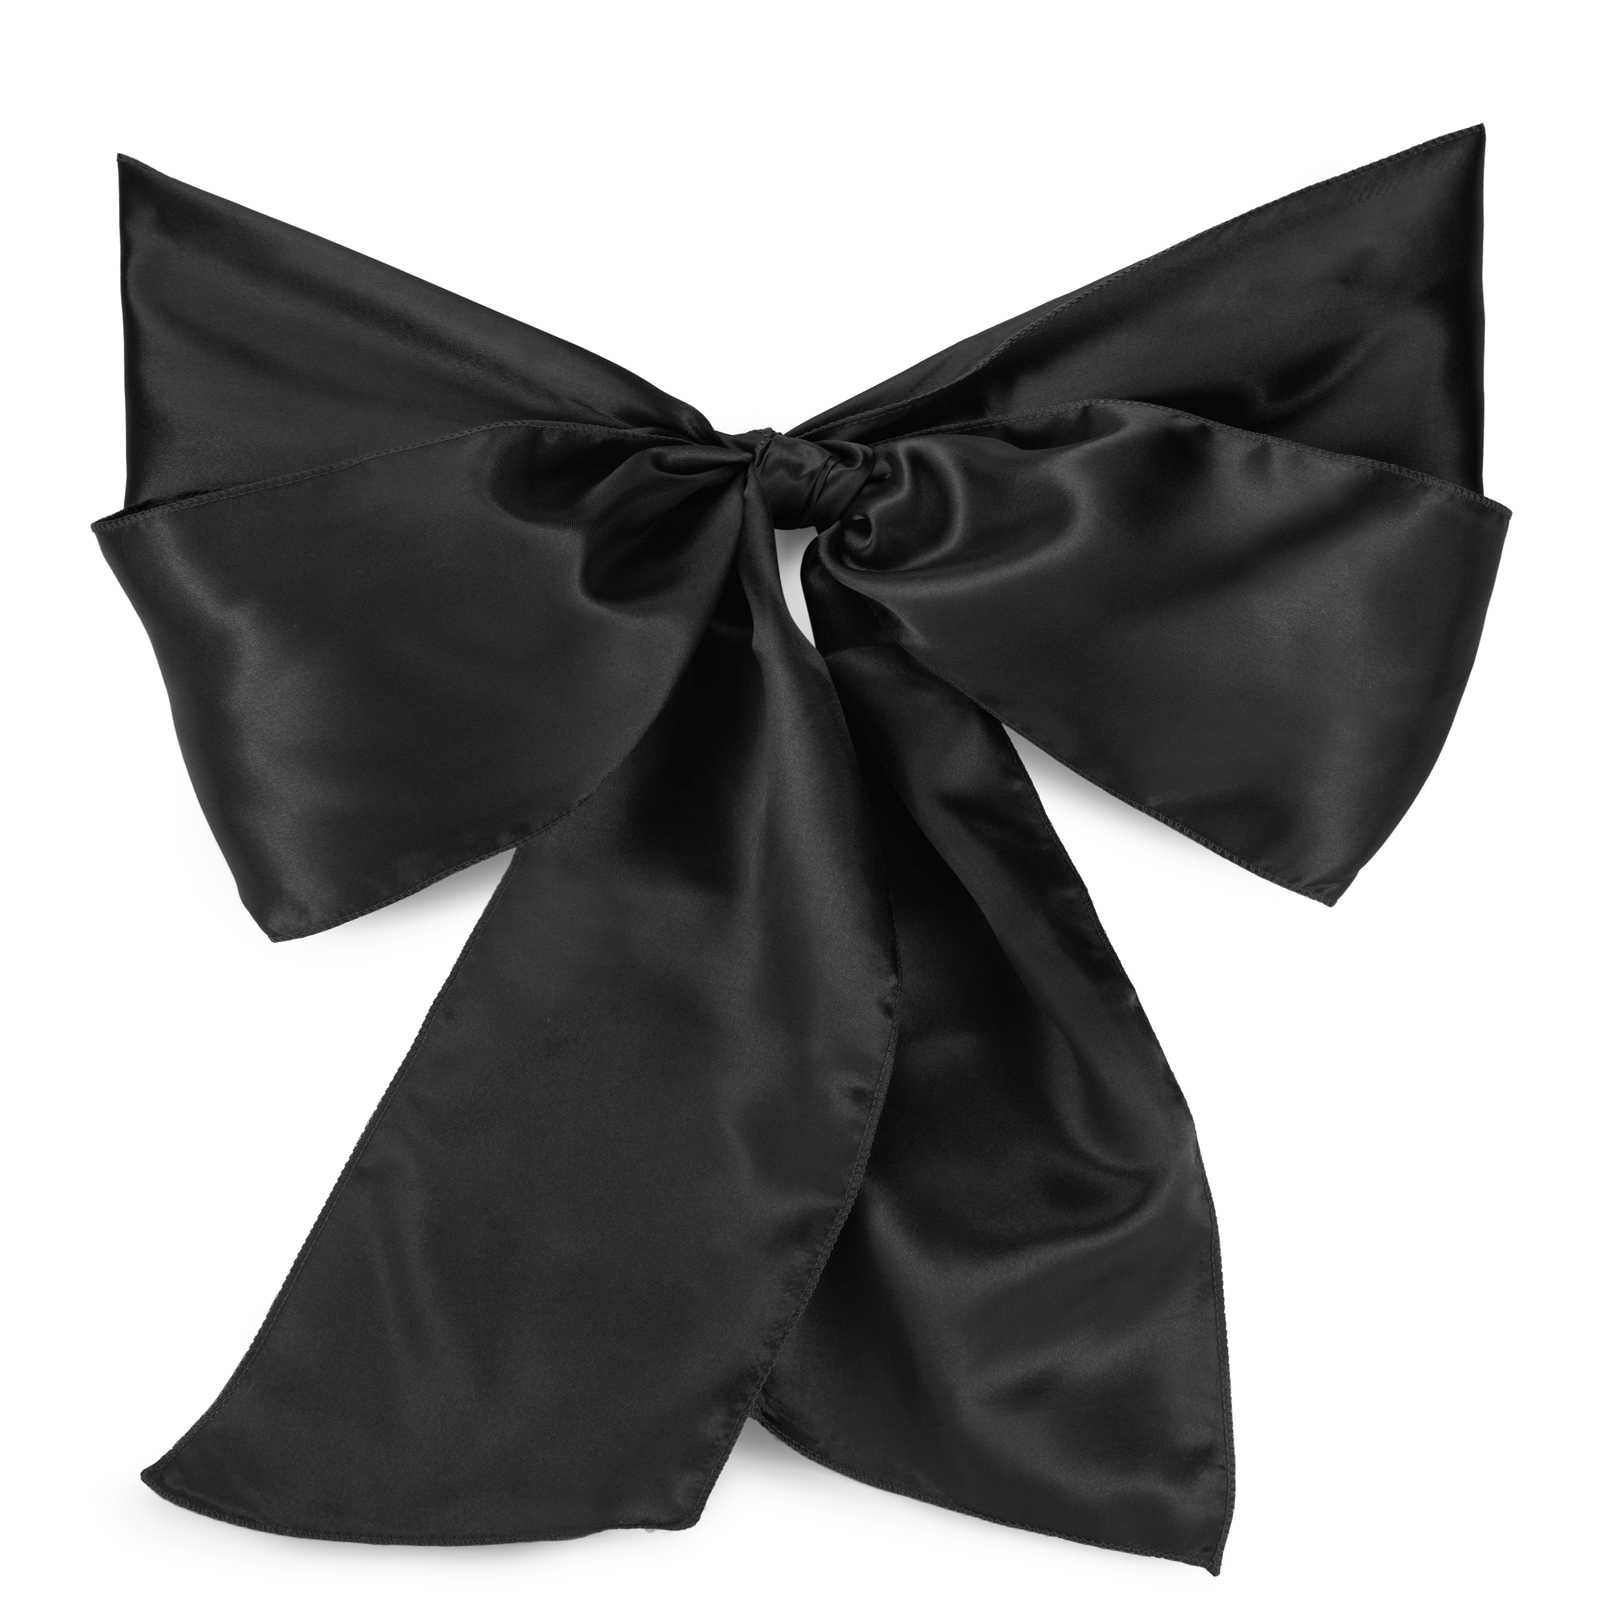 Lann's Linens - 10 Elegant Satin Wedding/Party Chair Cover Sashes/Bows - Ribbon Tie Back Sash (Multiple Colors)